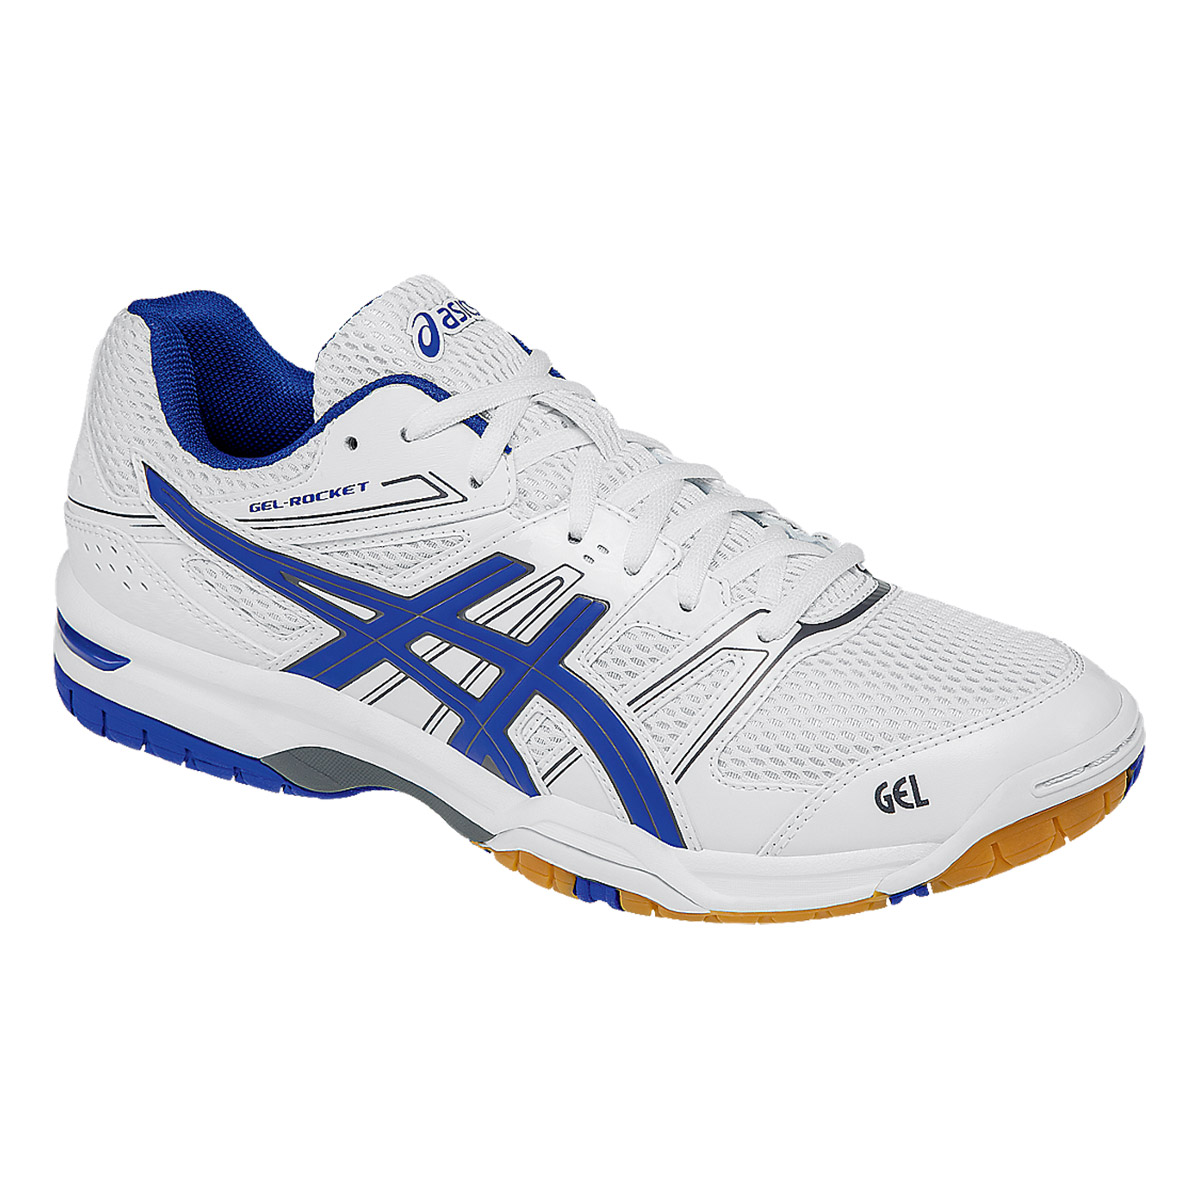 89ea43cf507d Buy Asics Gel-Rocket 7 Squash Shoes (White Blue Titanium) Online